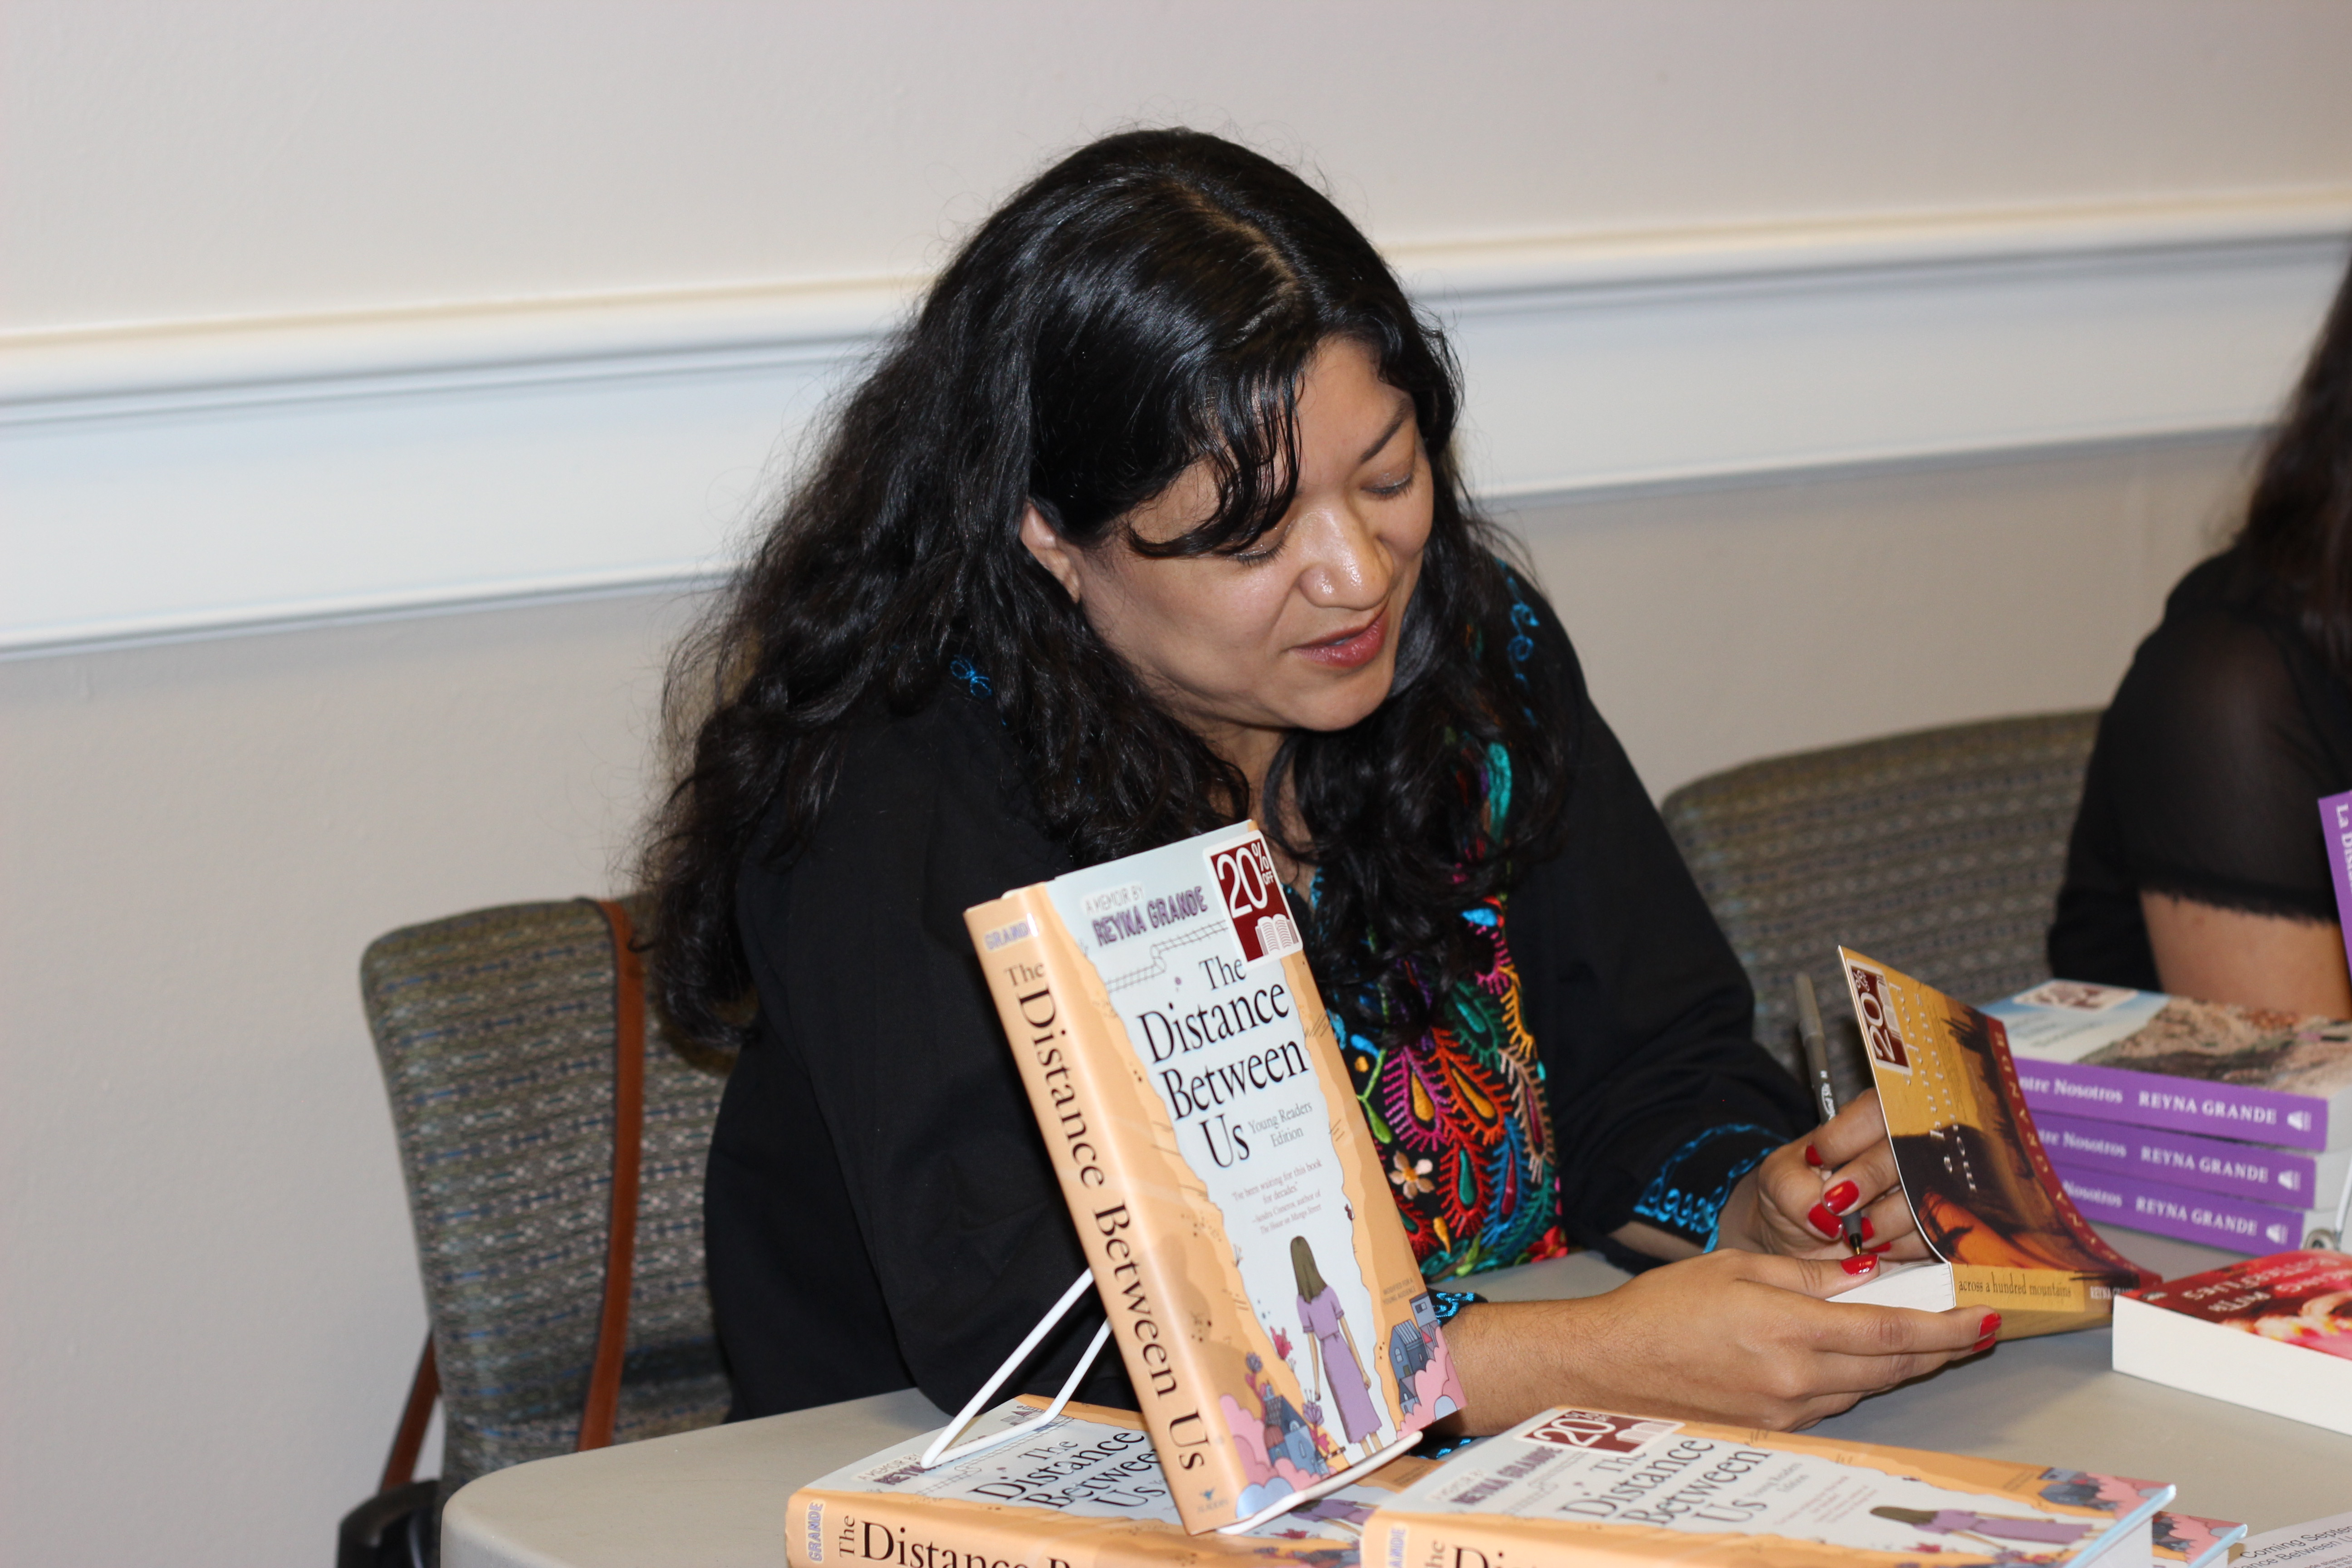 Reyna Grande signing a copy of her book Across A Million Suns as she sits at a large folding table near a display of her book The Distance Between Us.